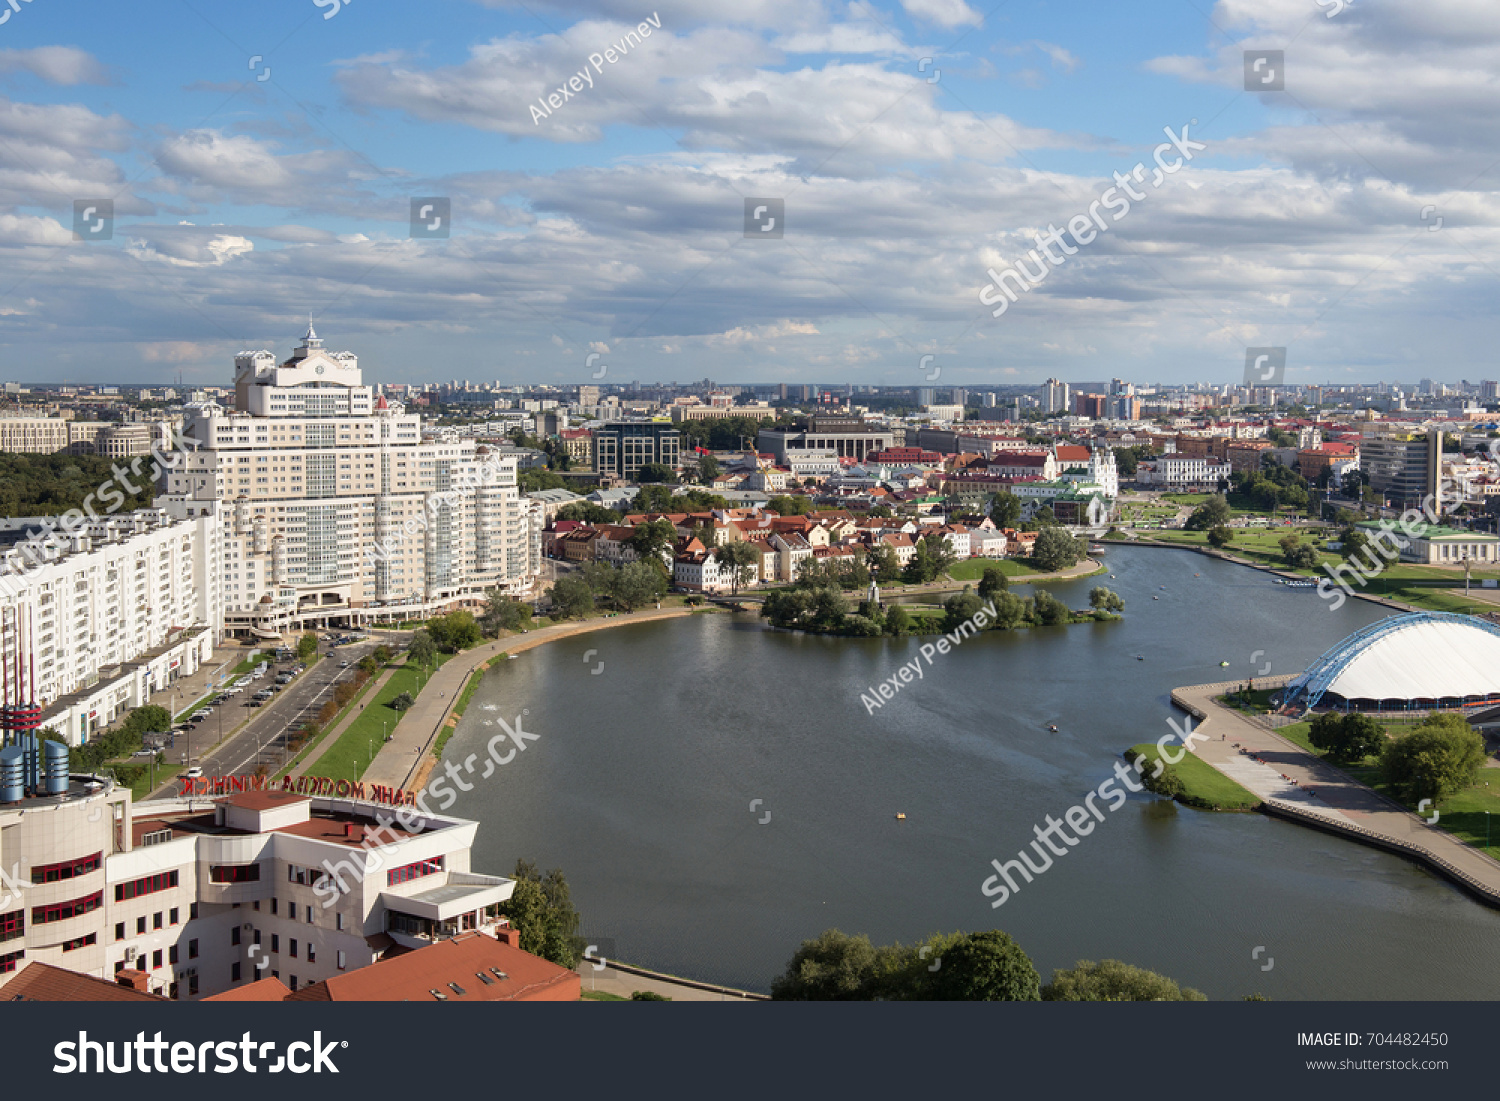 MINSK, BELARUS - AUGUST 15, 2016: Aerial view of the south part of the Minsk with Trinity Hill, Liberty Square, Sport complex and Svislach River. Minsk is the capital and largest city of Belarus.  #704482450